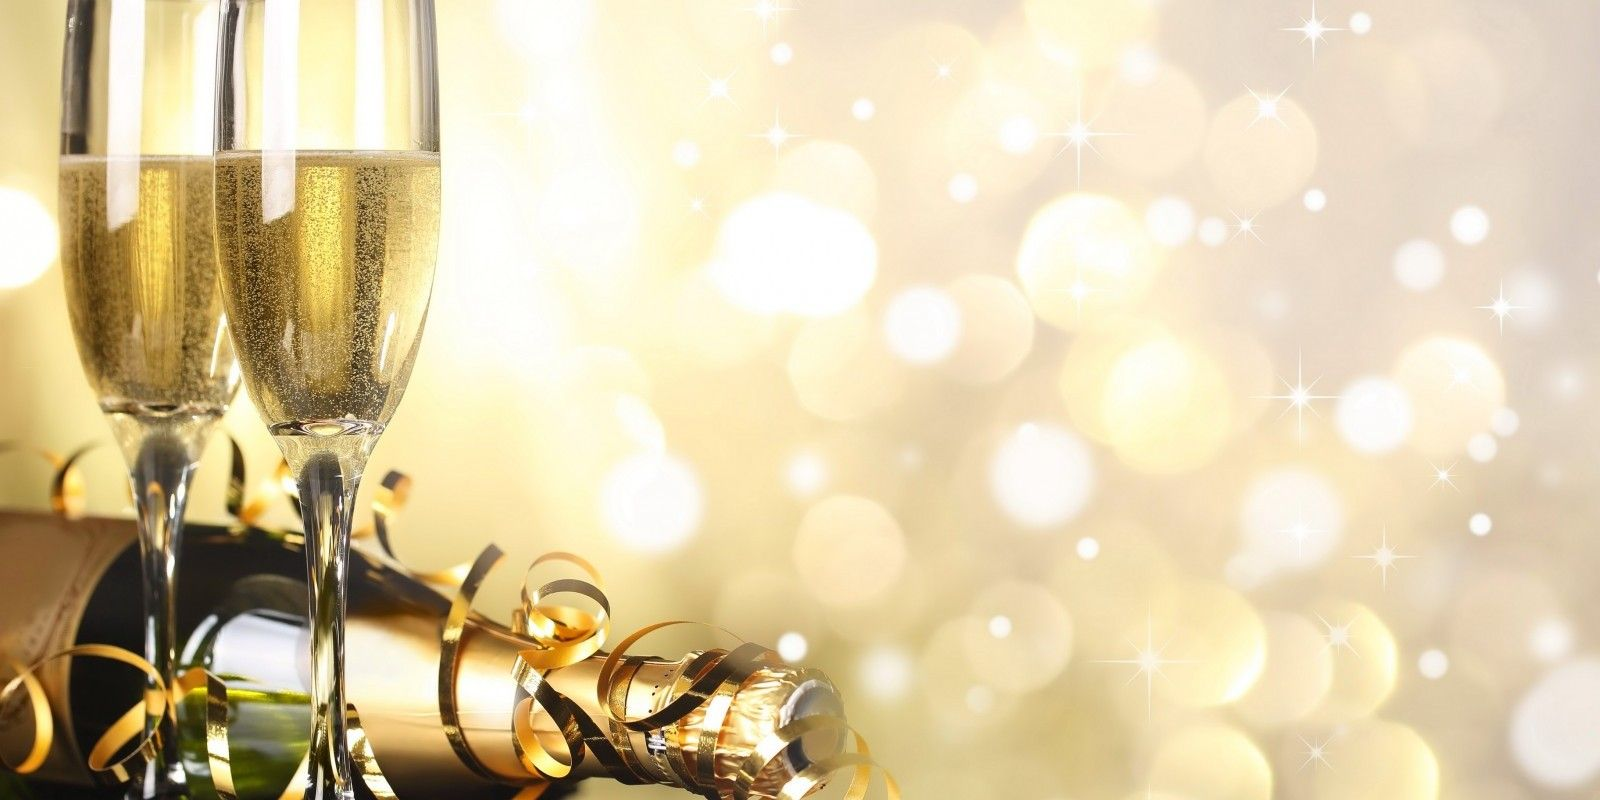 Pin by Peter Rosypal on Backgrounds Champagne, Champagne